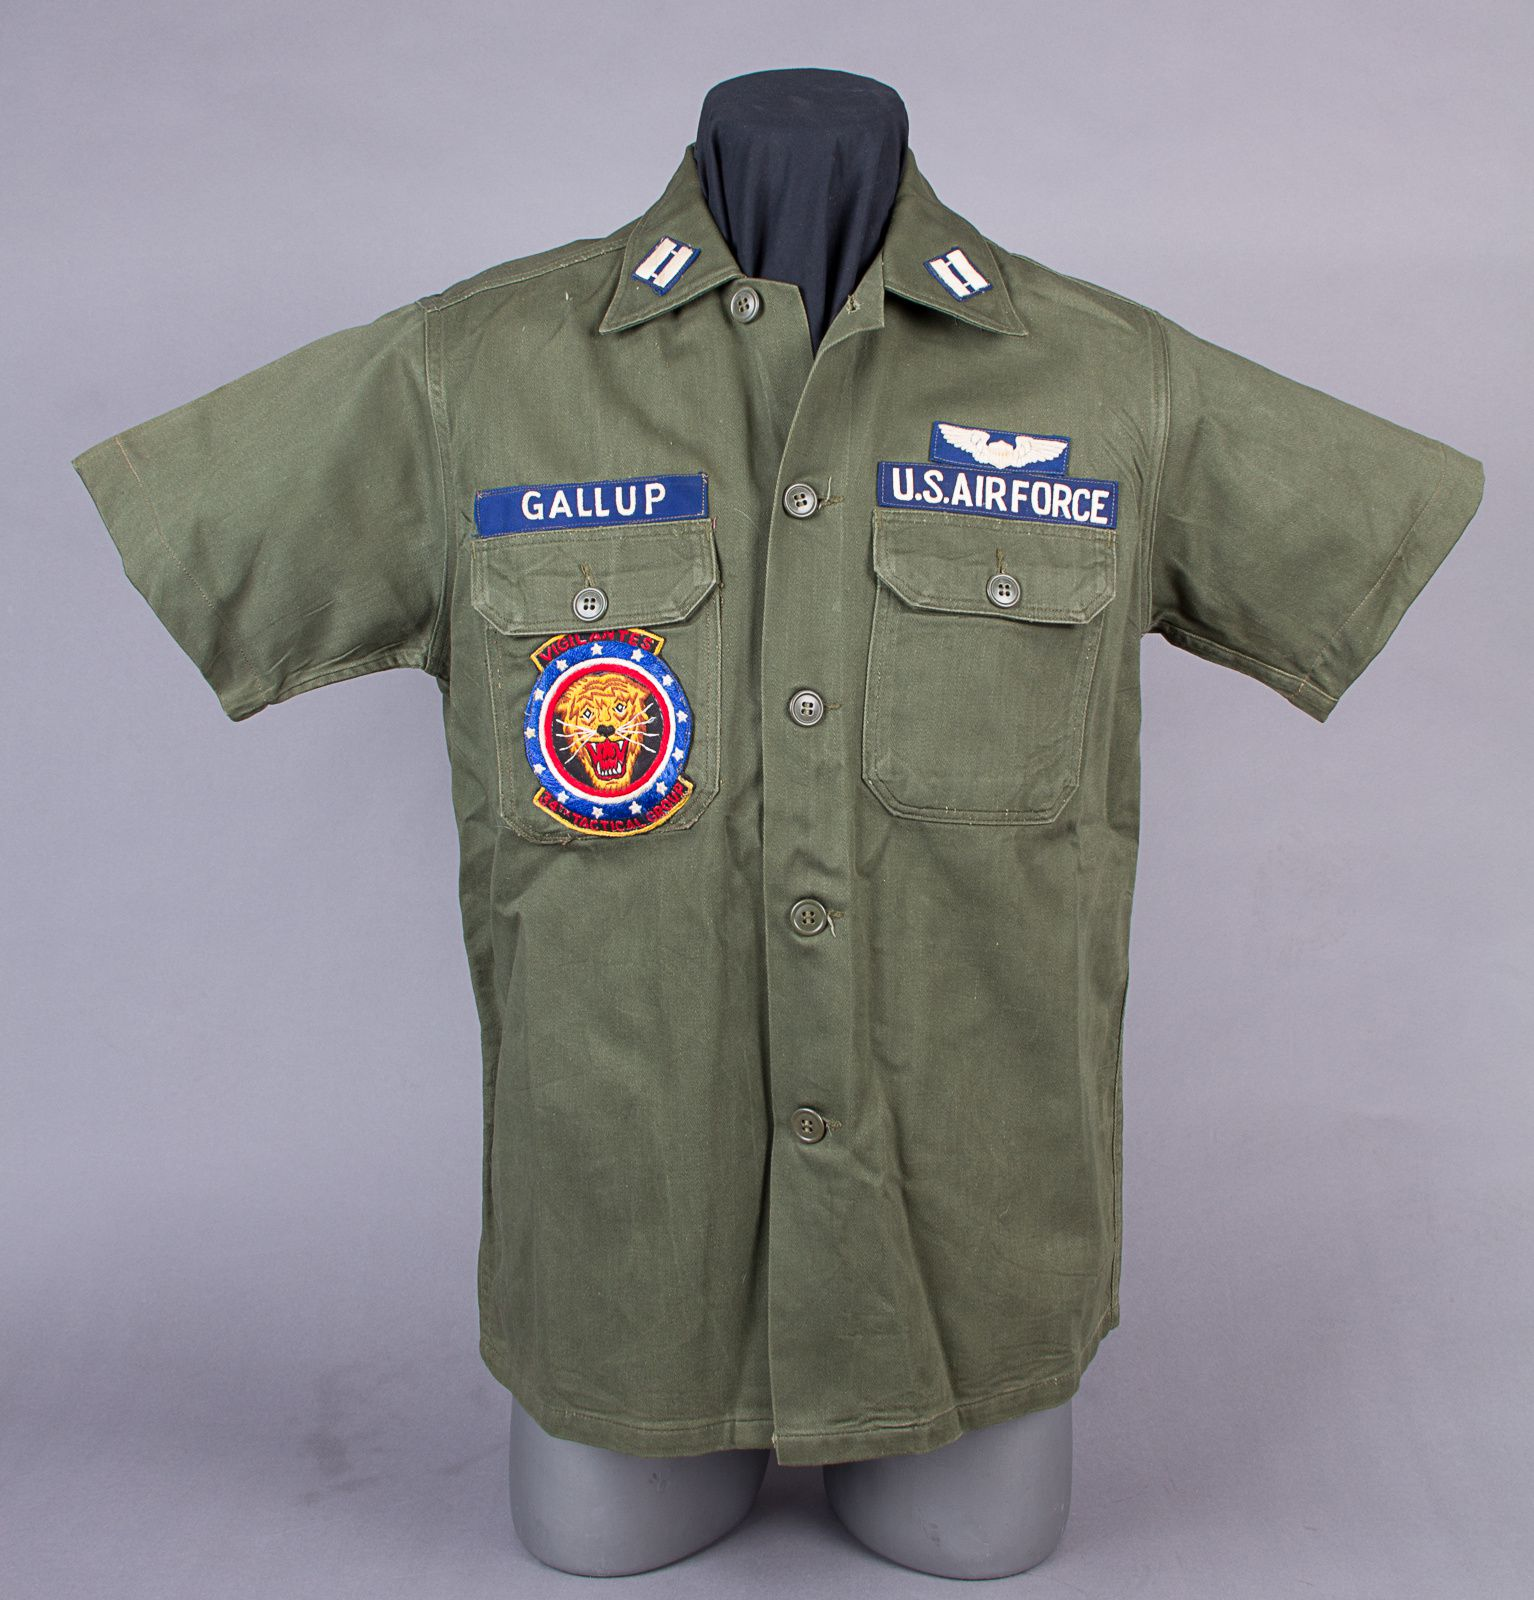 Capt. Gallup's second pattern OG-107 shirt, with the usual shortened sleeves. All patches, including the 34th Tactical Group pocket patch, are Vietnamese hand embroidered.